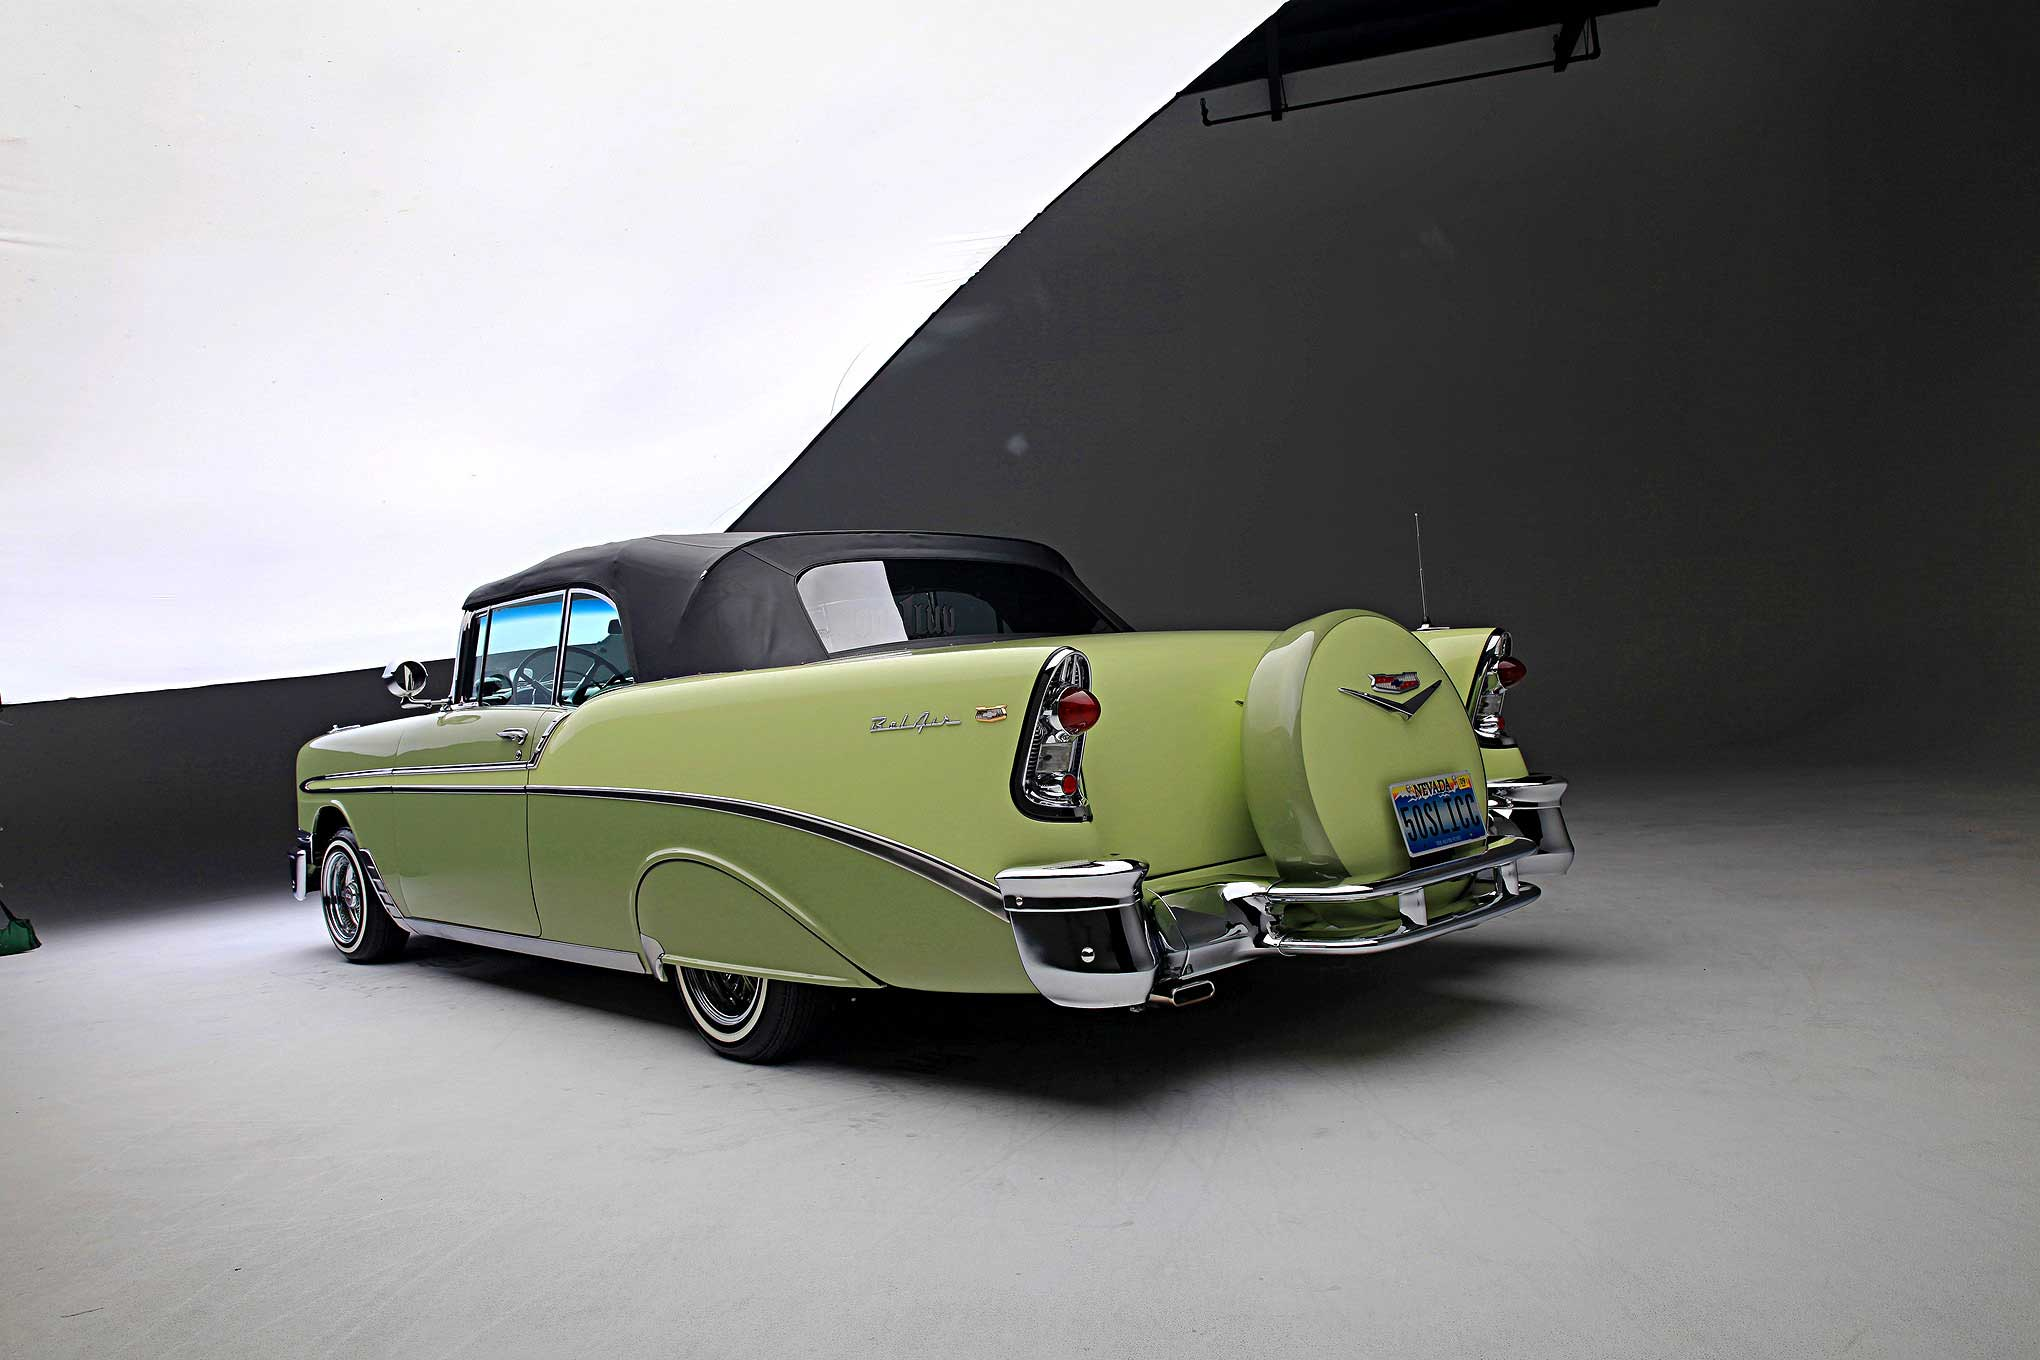 1956 Chevrolet Bel Air The Myth Of 56 1966 Rear View 57 67